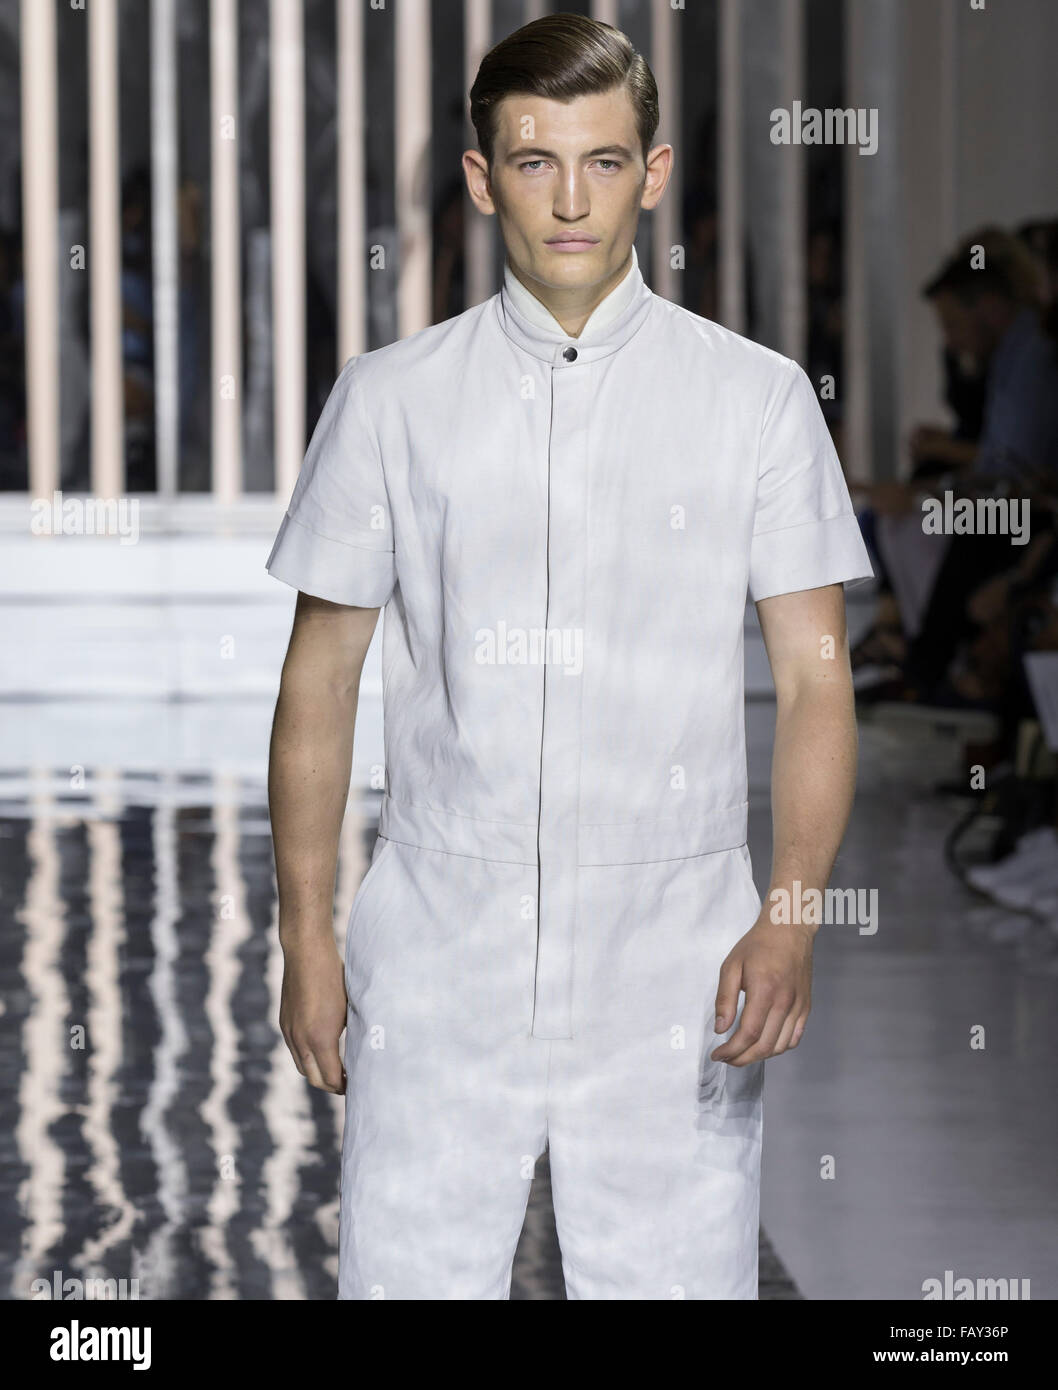 NEW YORK, NY - JULY 14, 2015: Dylan Hartigan walks the runway during the Rochambeau show at New York Fashion Week - Stock Image